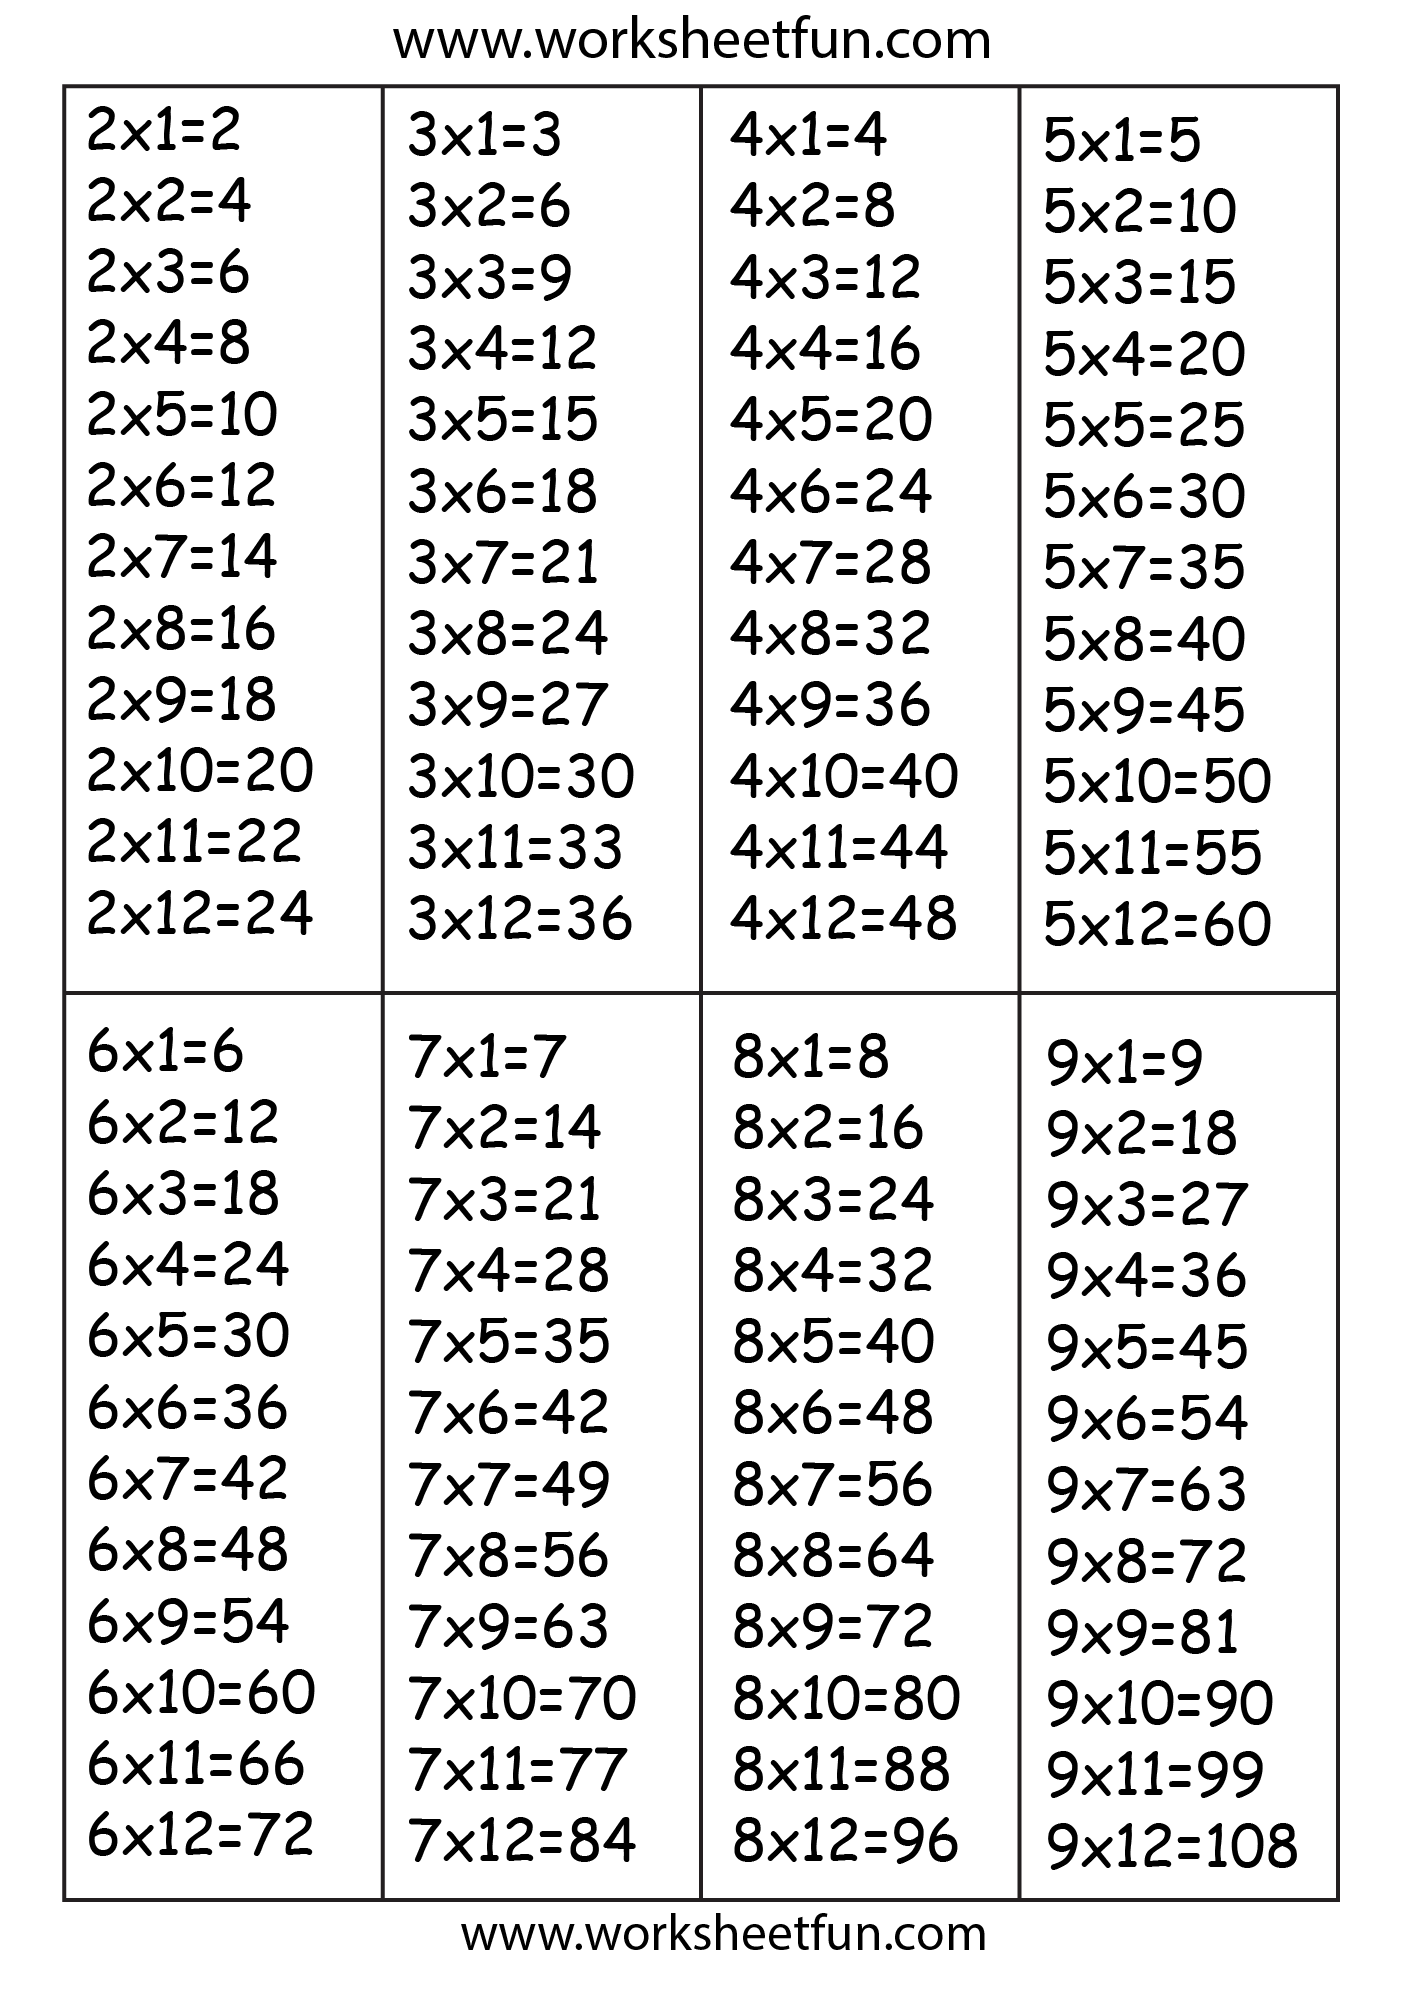 Times Tables / FREE Printable Worksheets – Worksheetfun